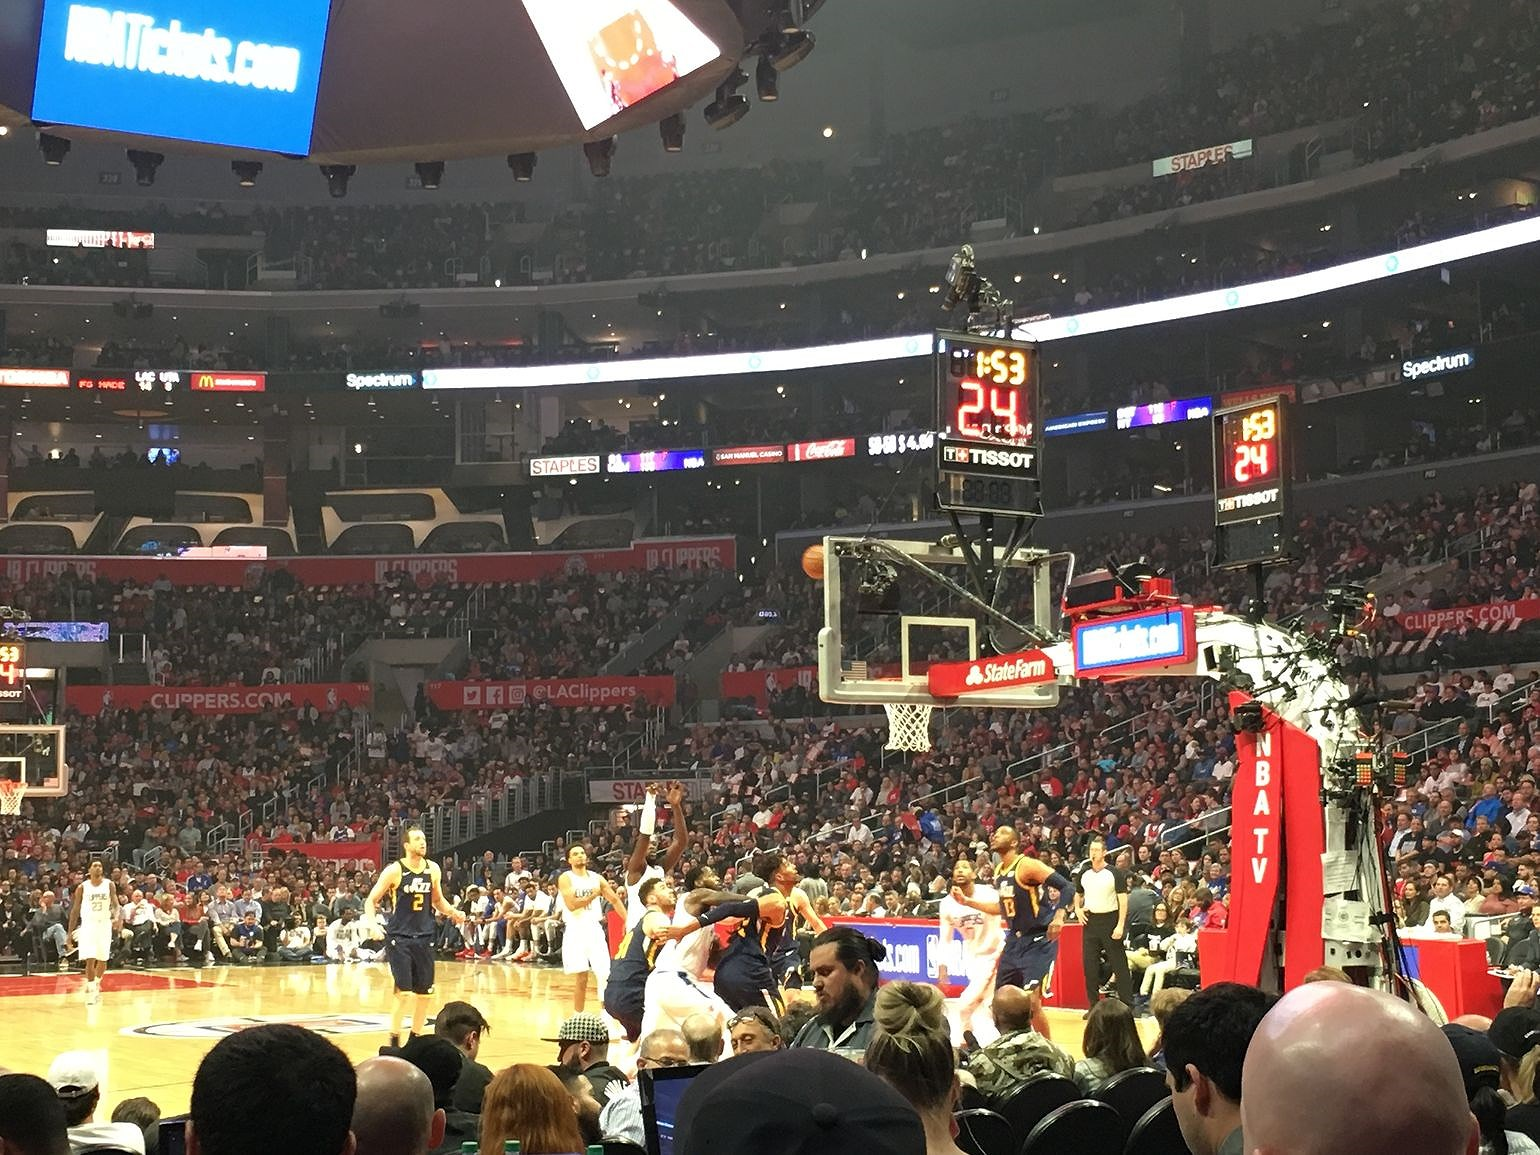 Floor seats at LA Clippers